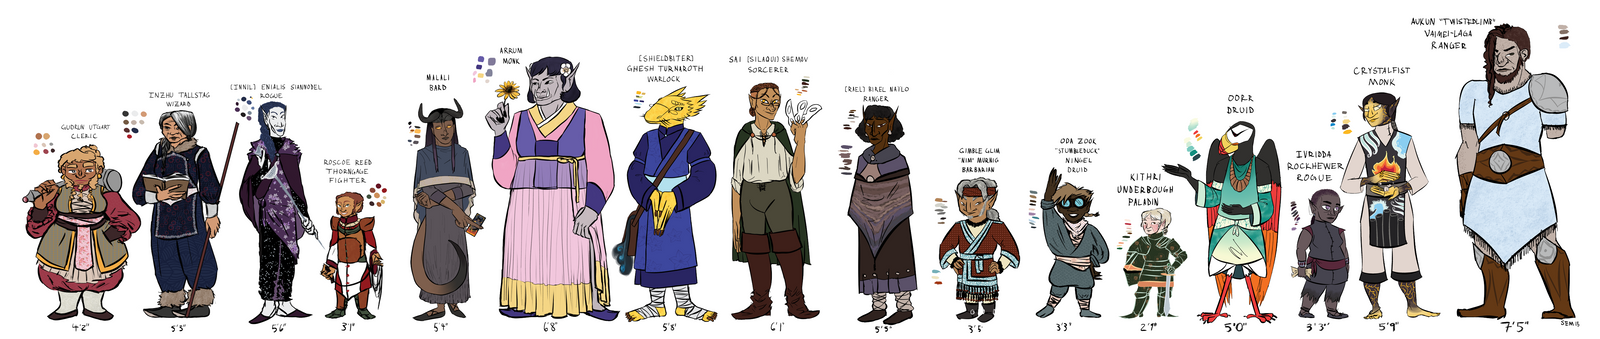 DnD 5e Height Comparison by Teela-B